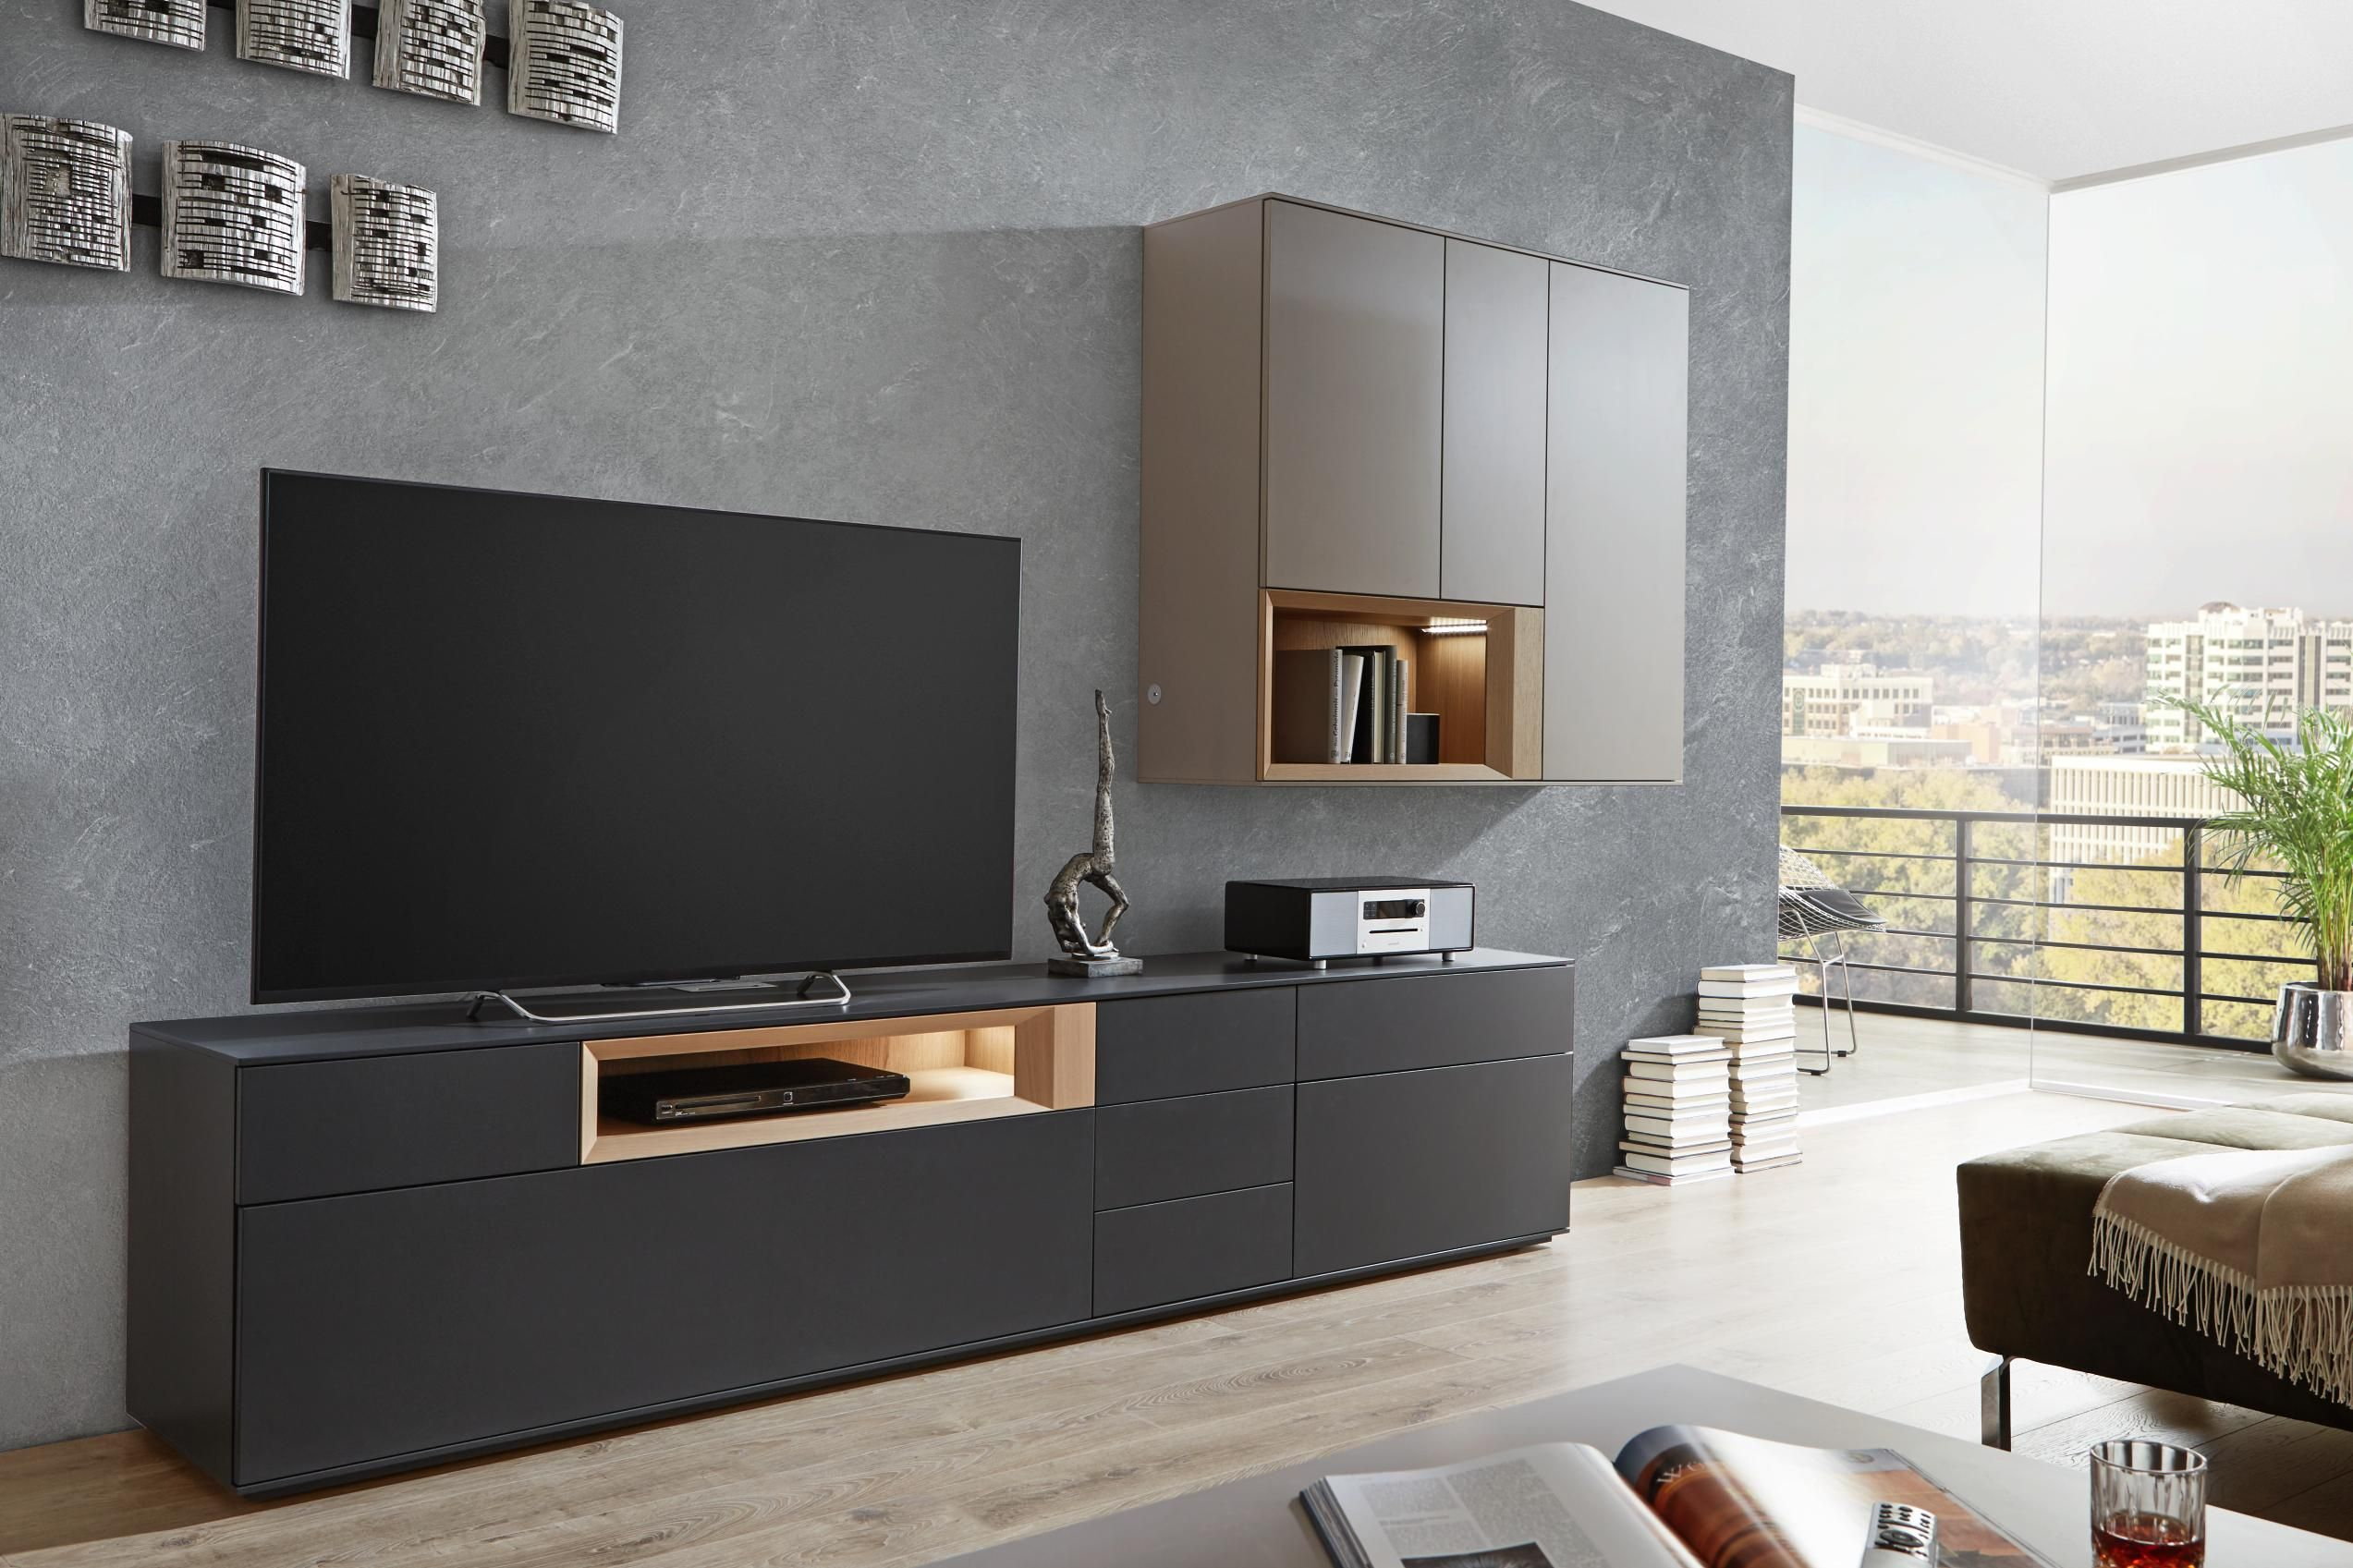 wohnwand in anthrazit eichefarben grau in 2019 wohnw nde. Black Bedroom Furniture Sets. Home Design Ideas